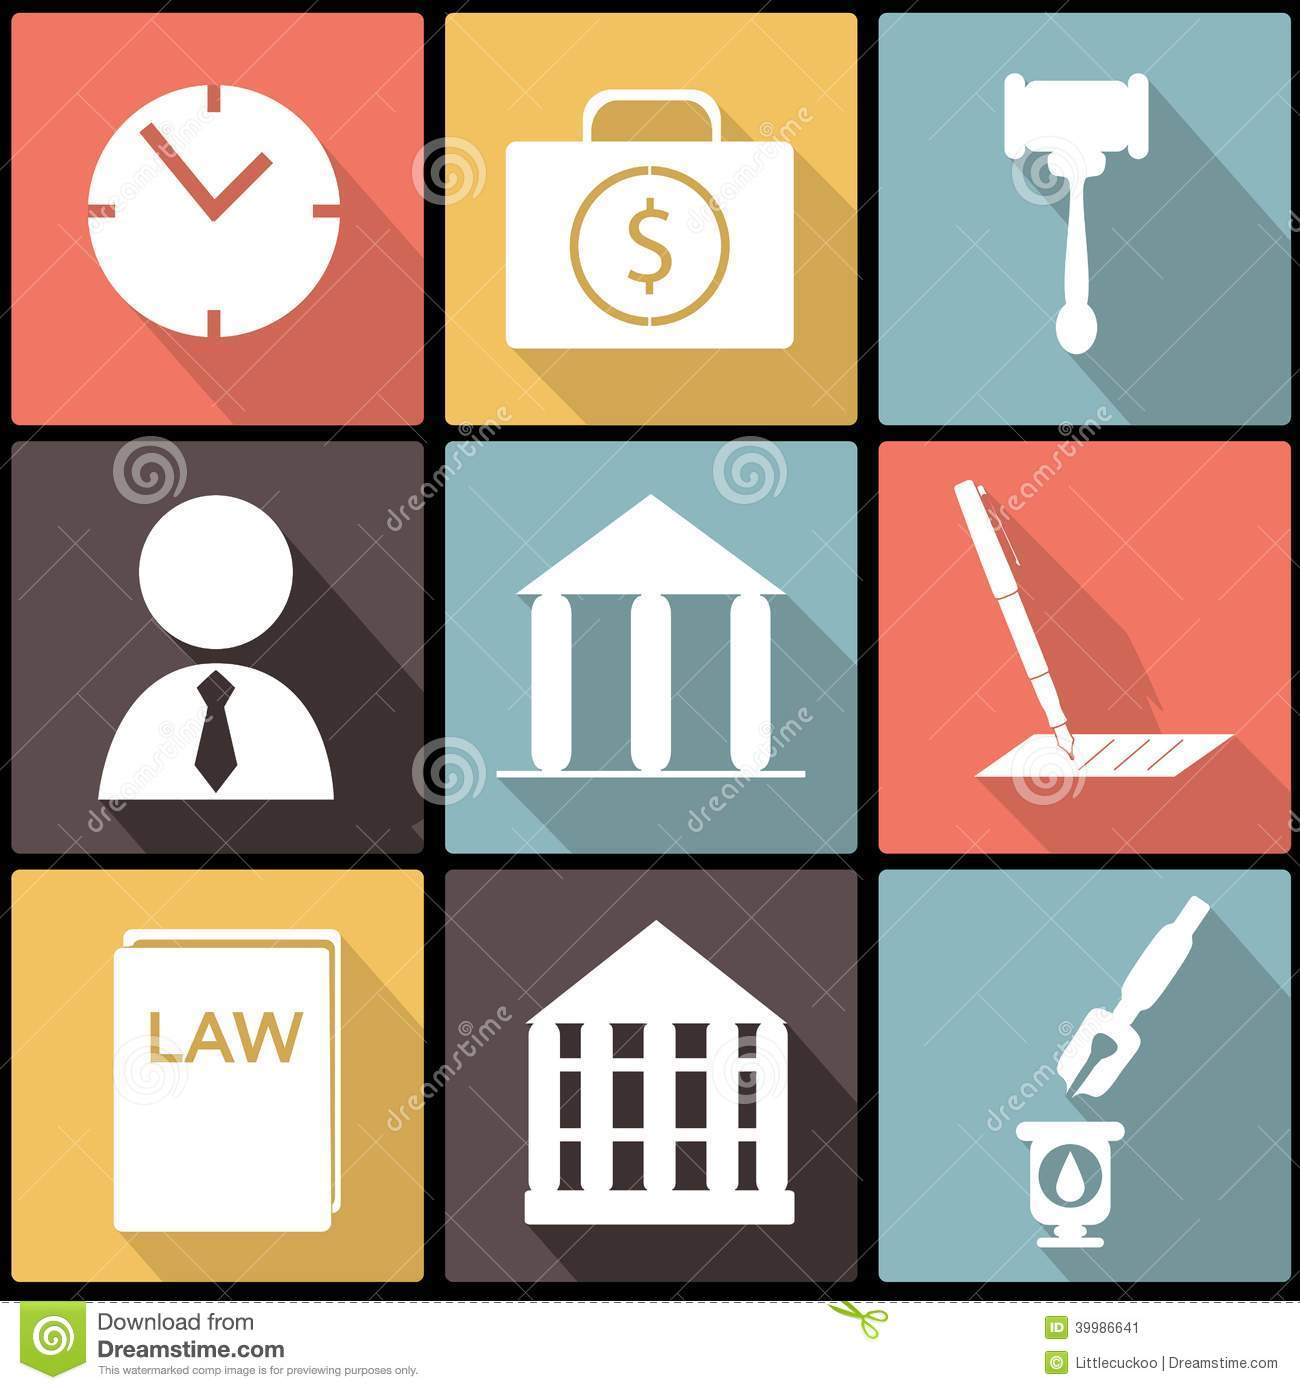 Legal, Law And Justice Icon Set In Flat Design Illustration 39986641 -  Megapixl